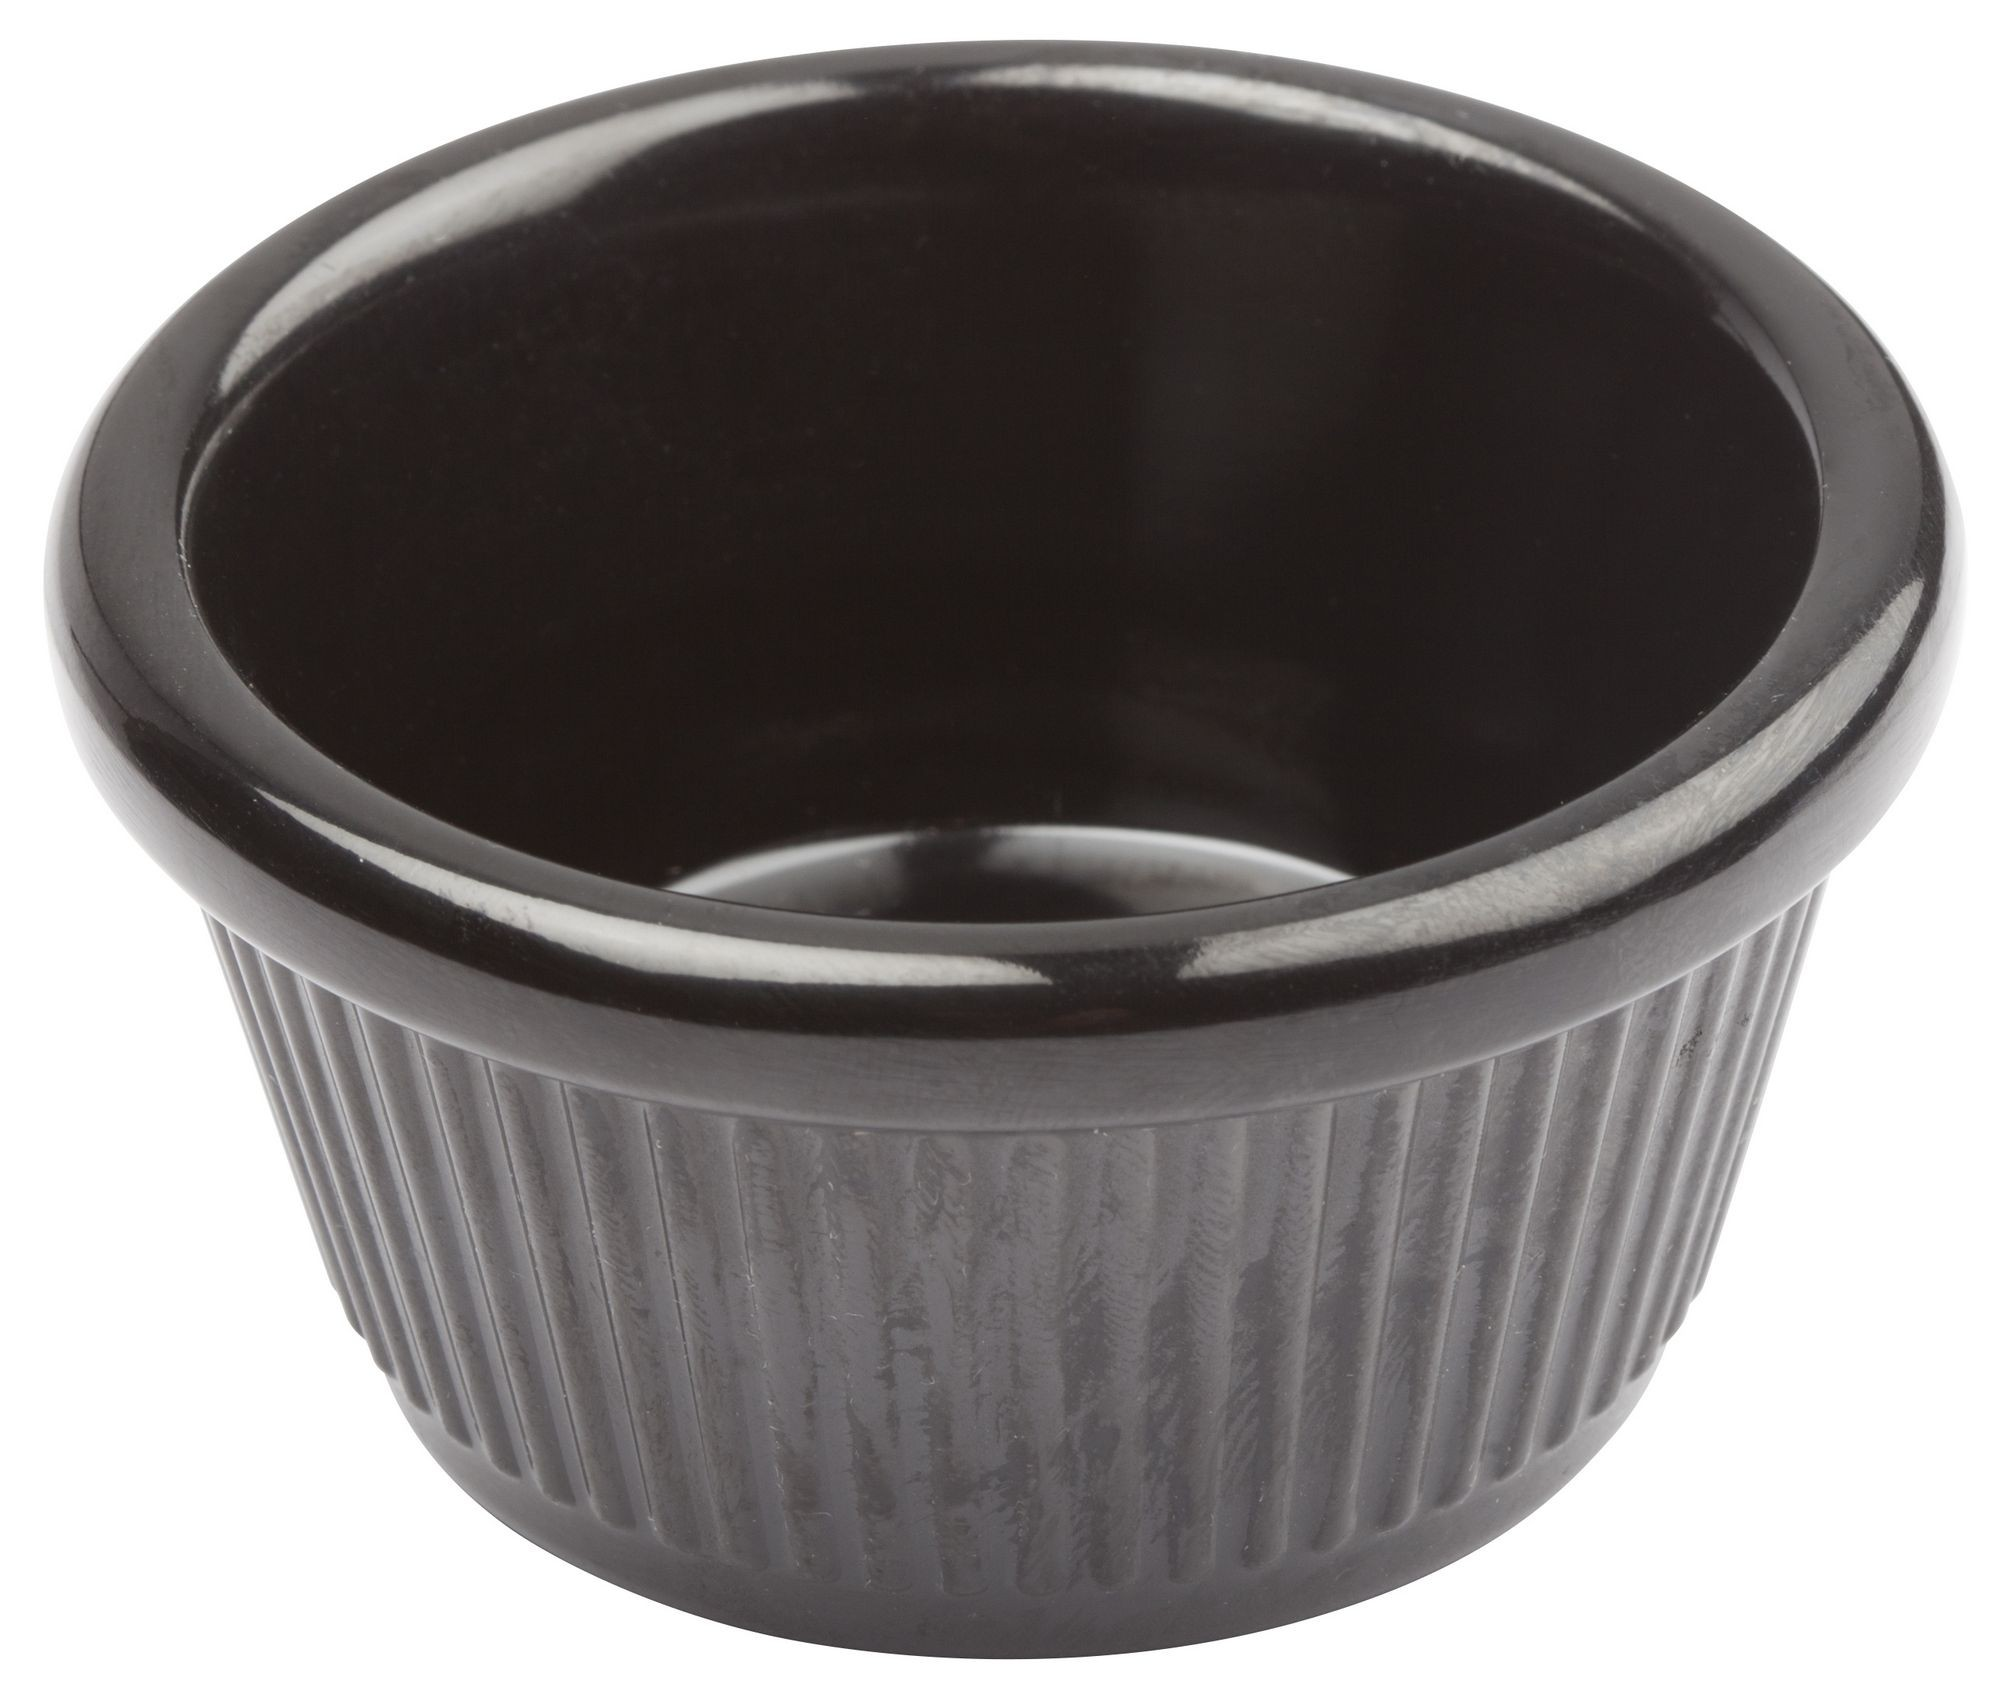 Winco RFM-1K 1.5 oz. Fluted Black Melamine Ramekin